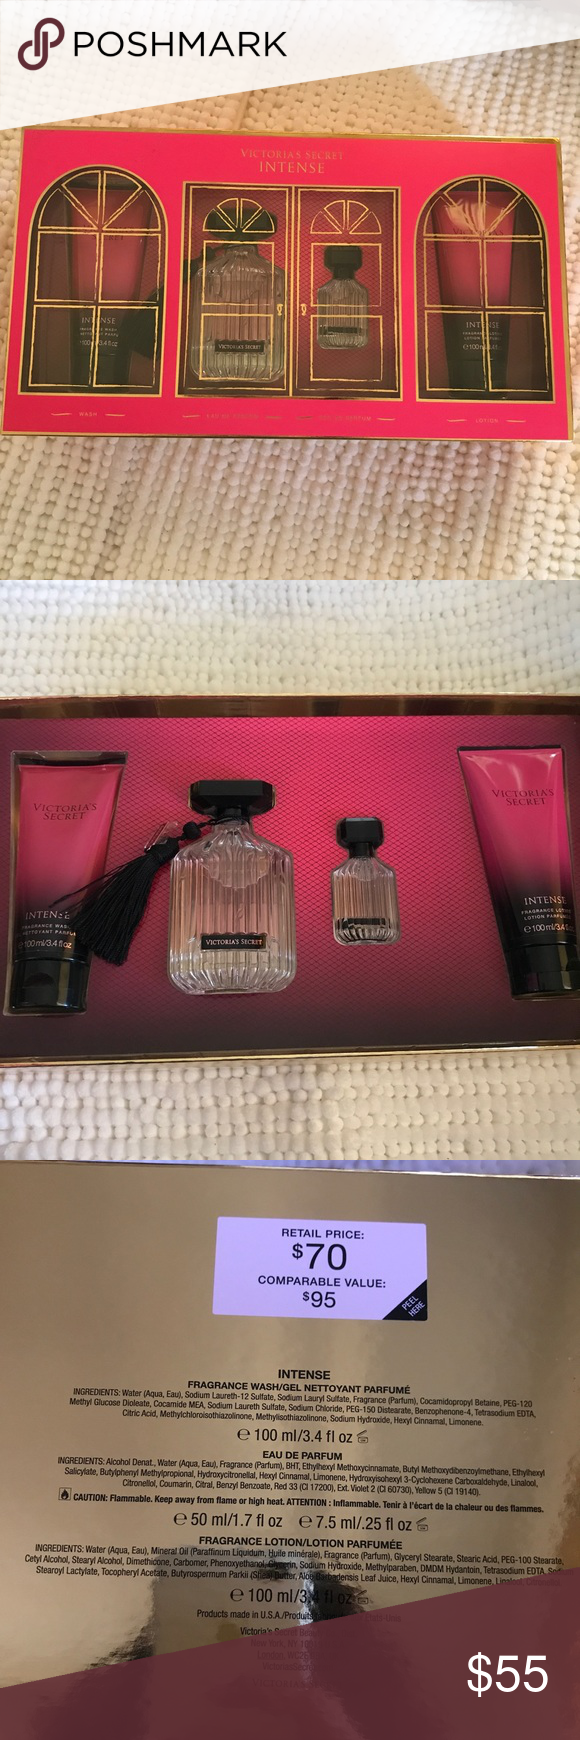 ef519cb05a8 Victoria secret intense perfume set New Victoria s Secret